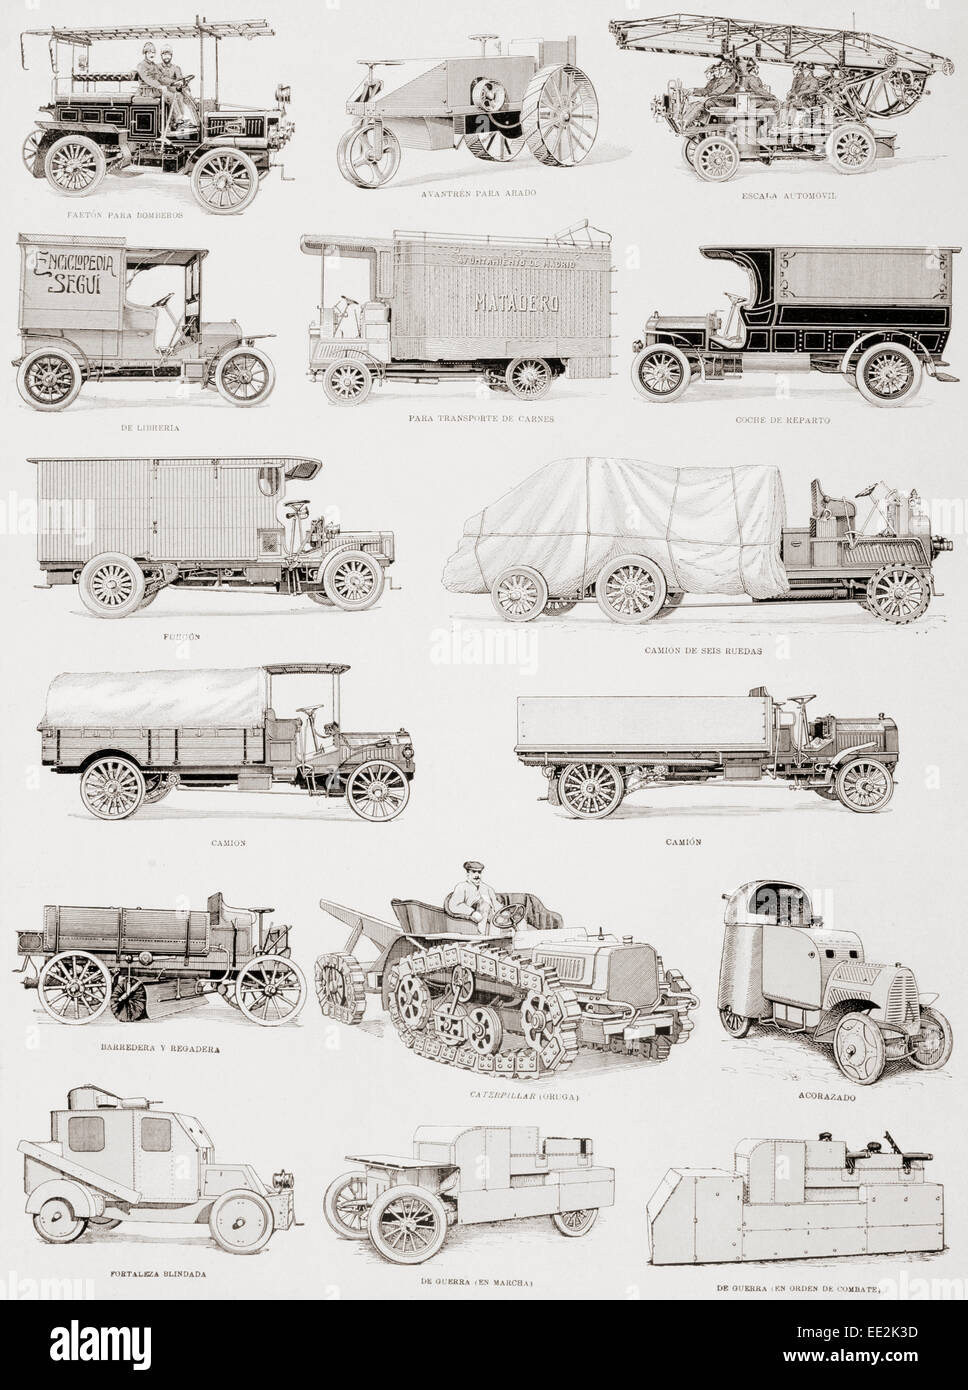 Trucks, fire brigades and military vehicles from the first decade of the 20th century.  Captions in Spanish language. - Stock Image